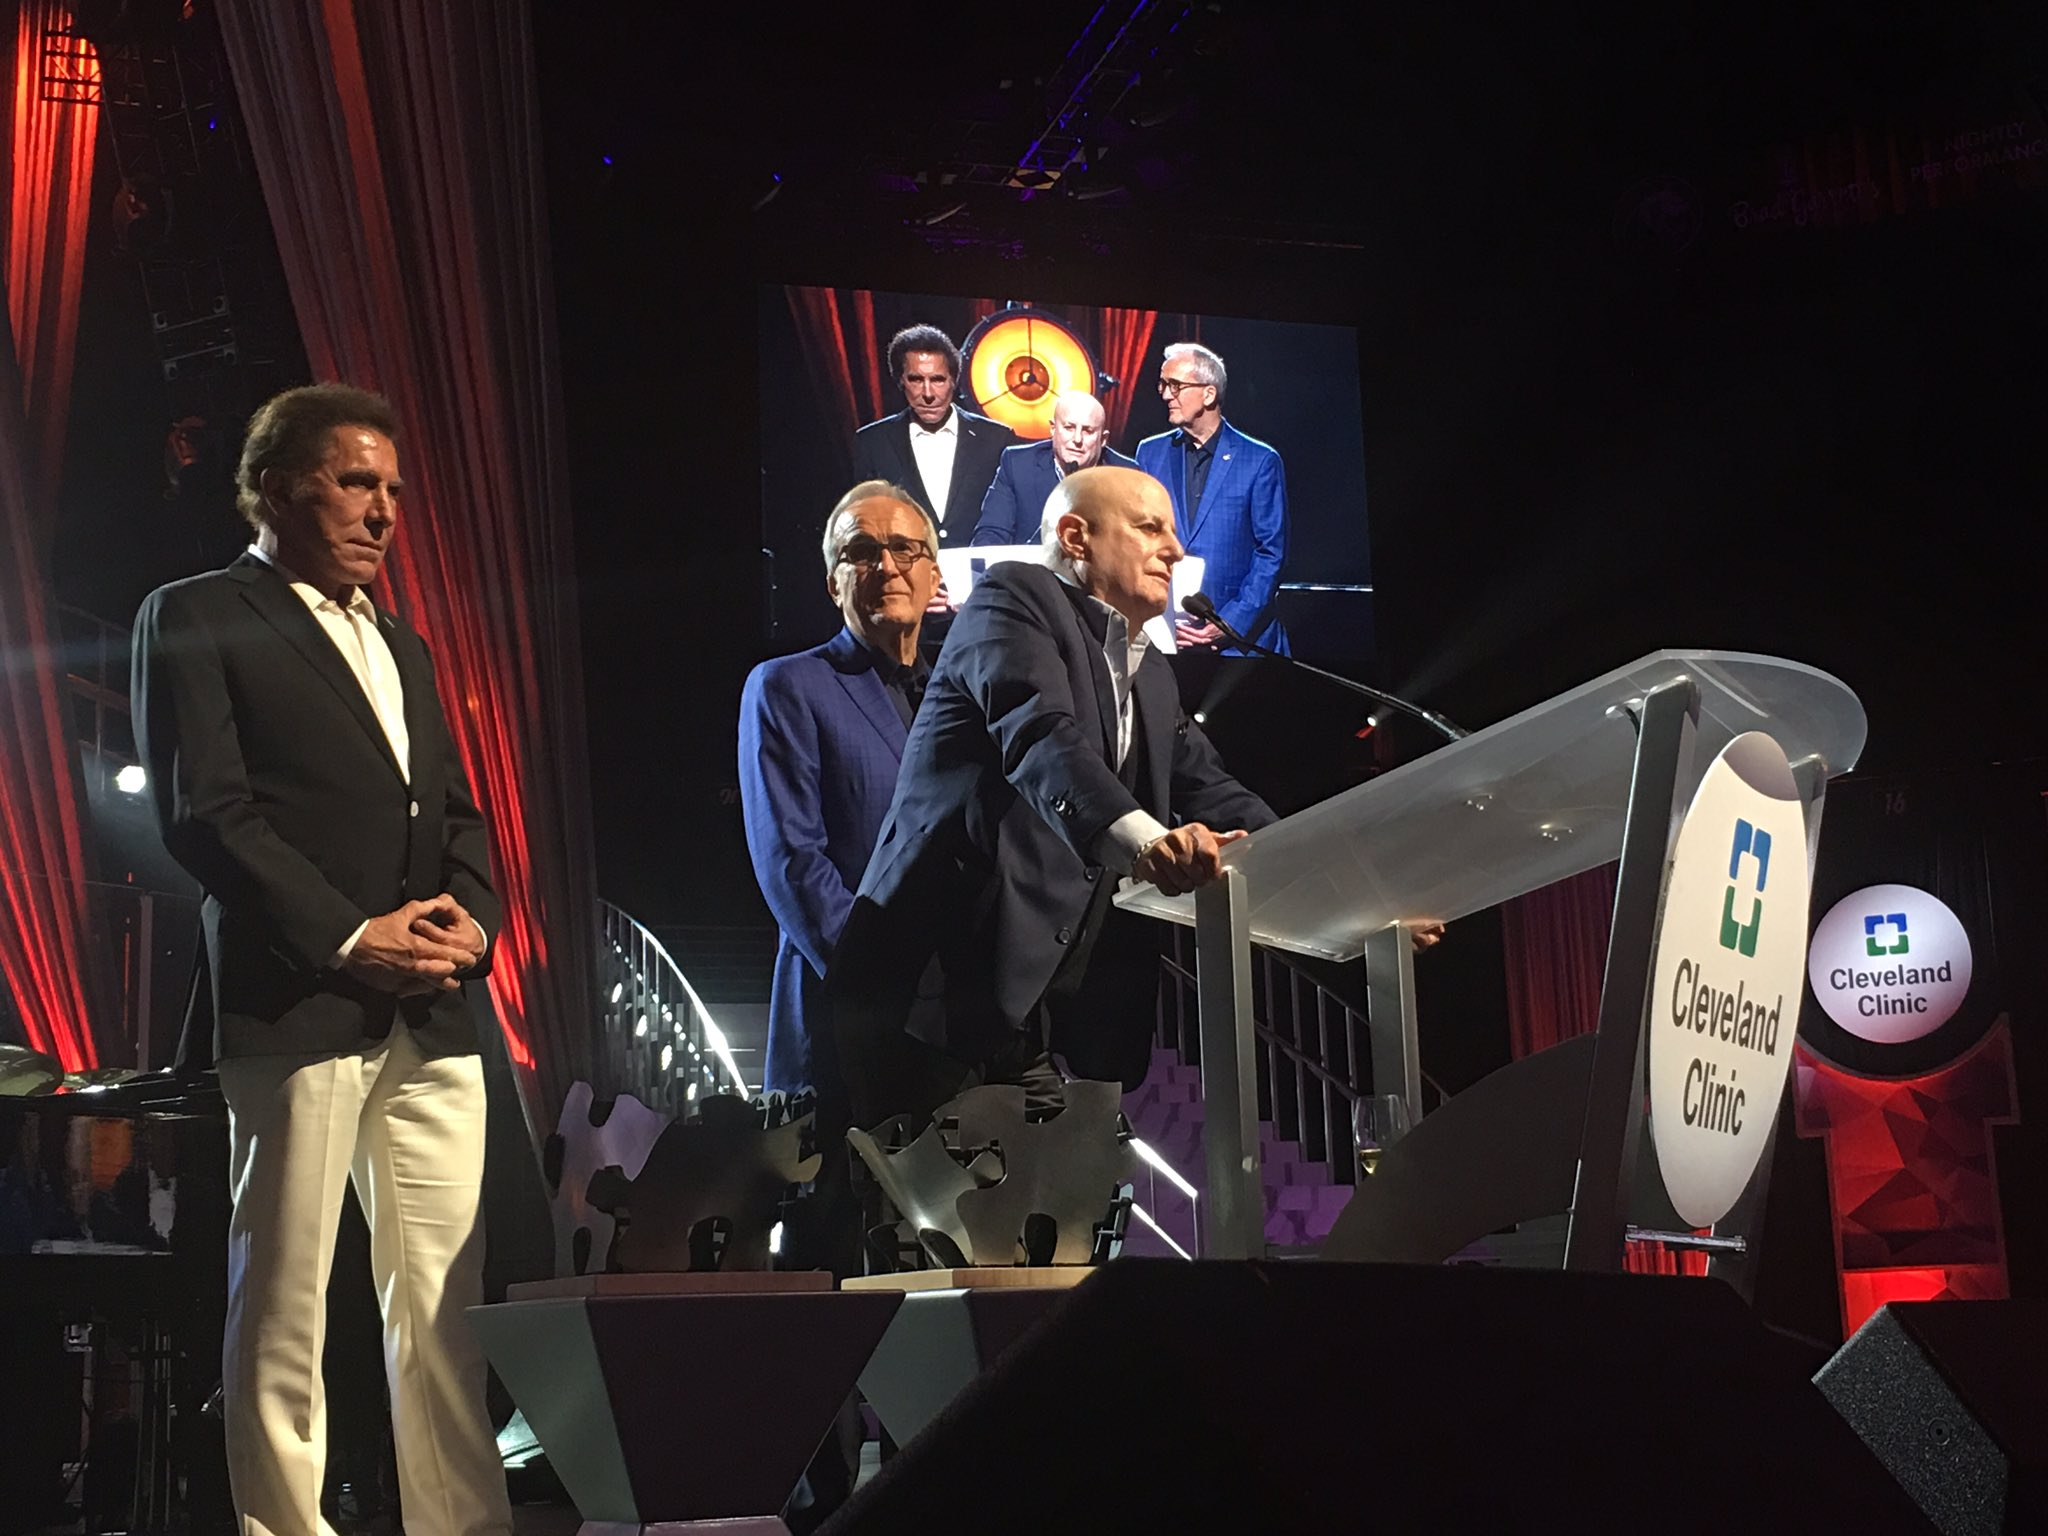 #RonPerelman at the stage, flanked by #SteveWynn and #LarryRuvo at #PowerOfLove @MGMGrand https://t.co/qcIibu7dUQ